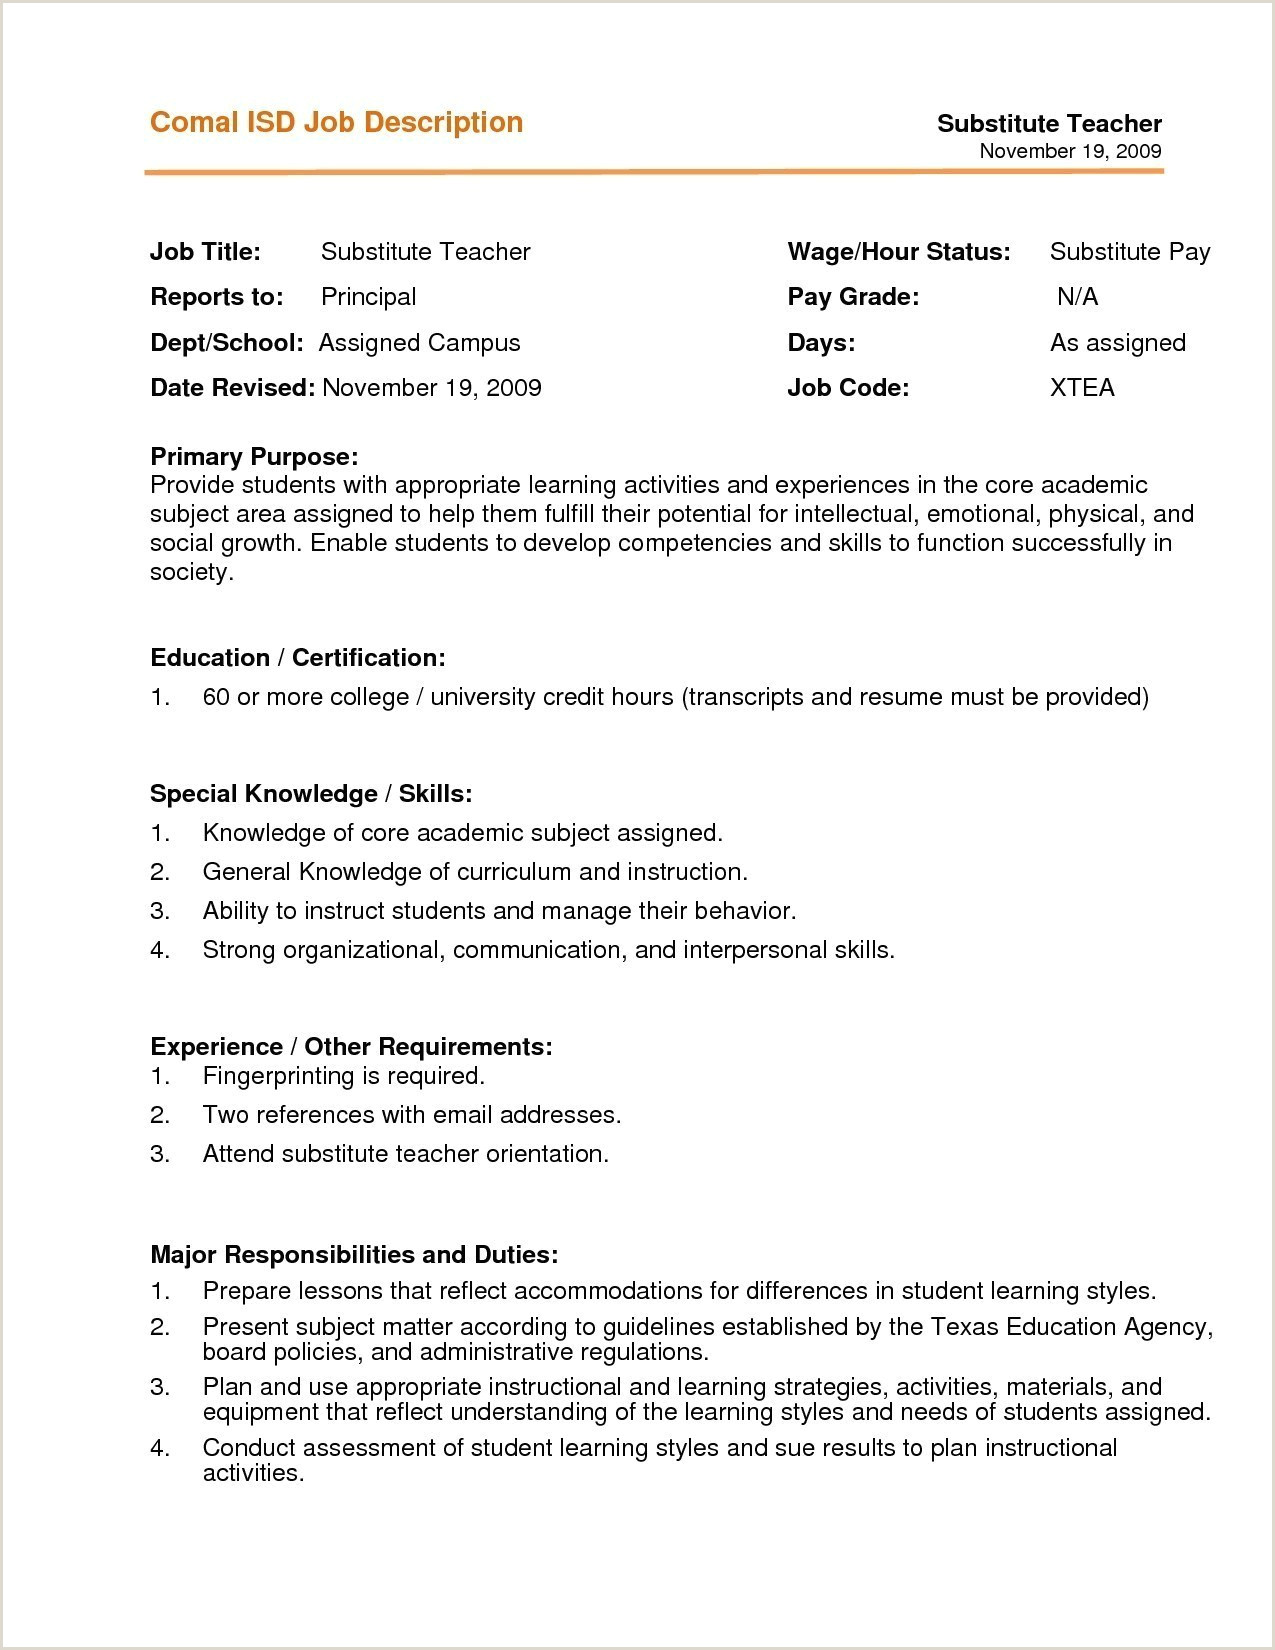 Teaching Jobs Resume Professional Sample Resume for Teachers